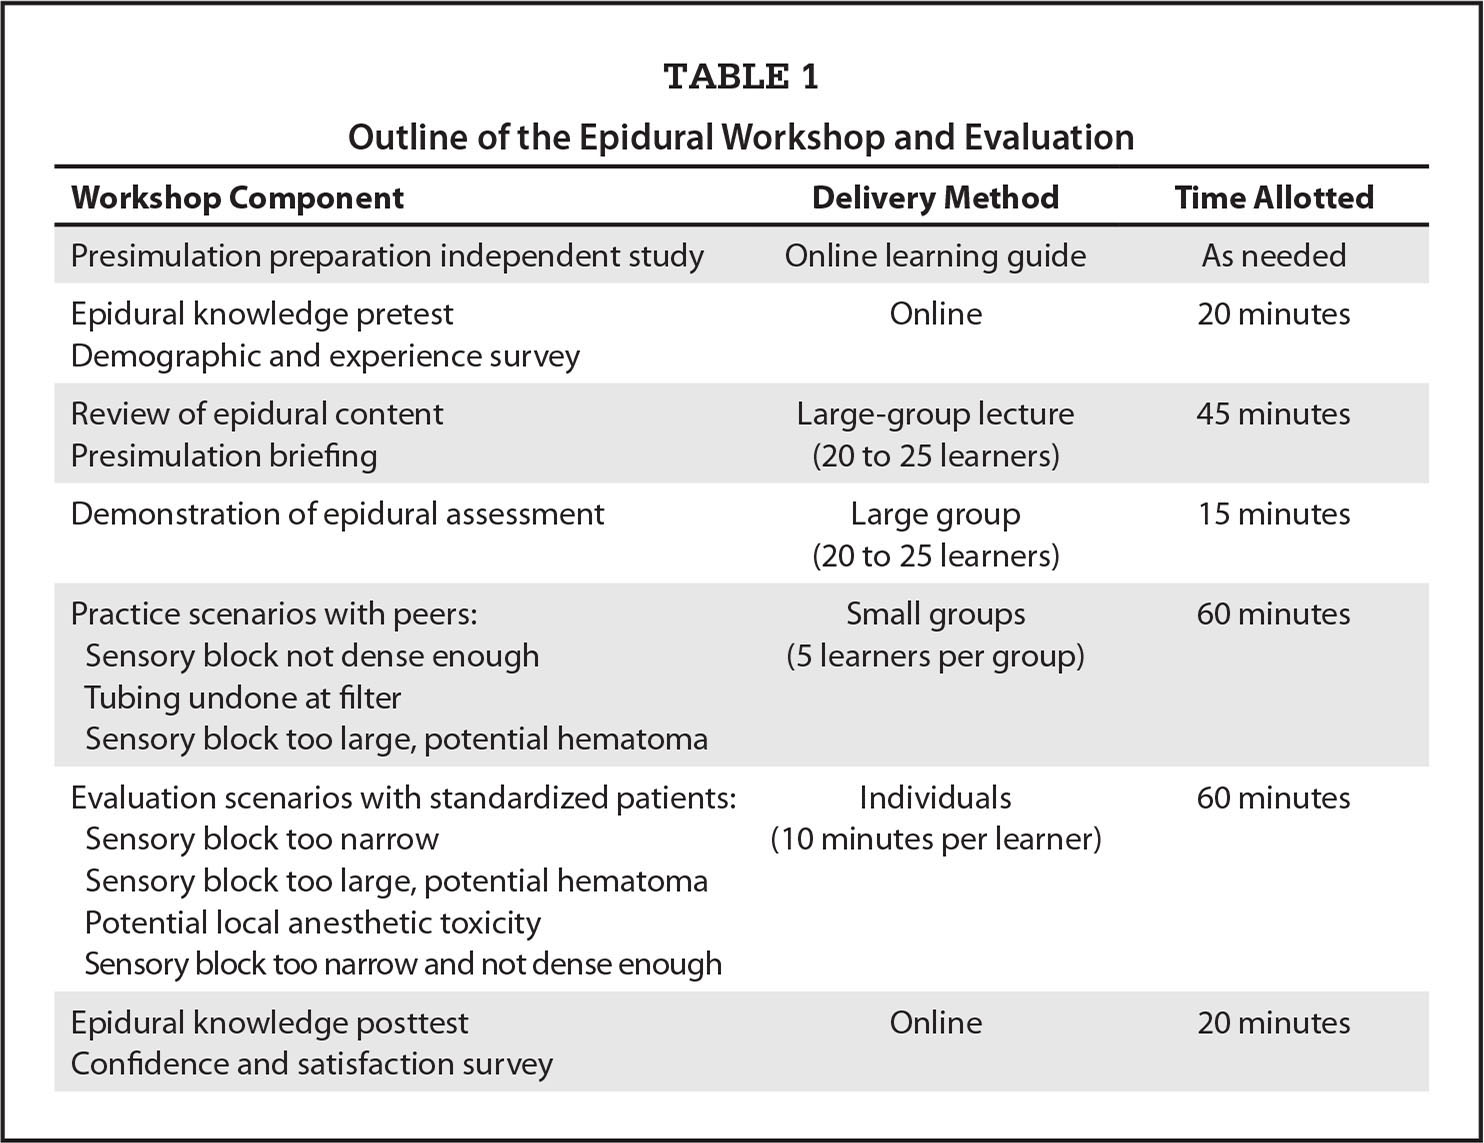 Outline of the Epidural Workshop and Evaluation